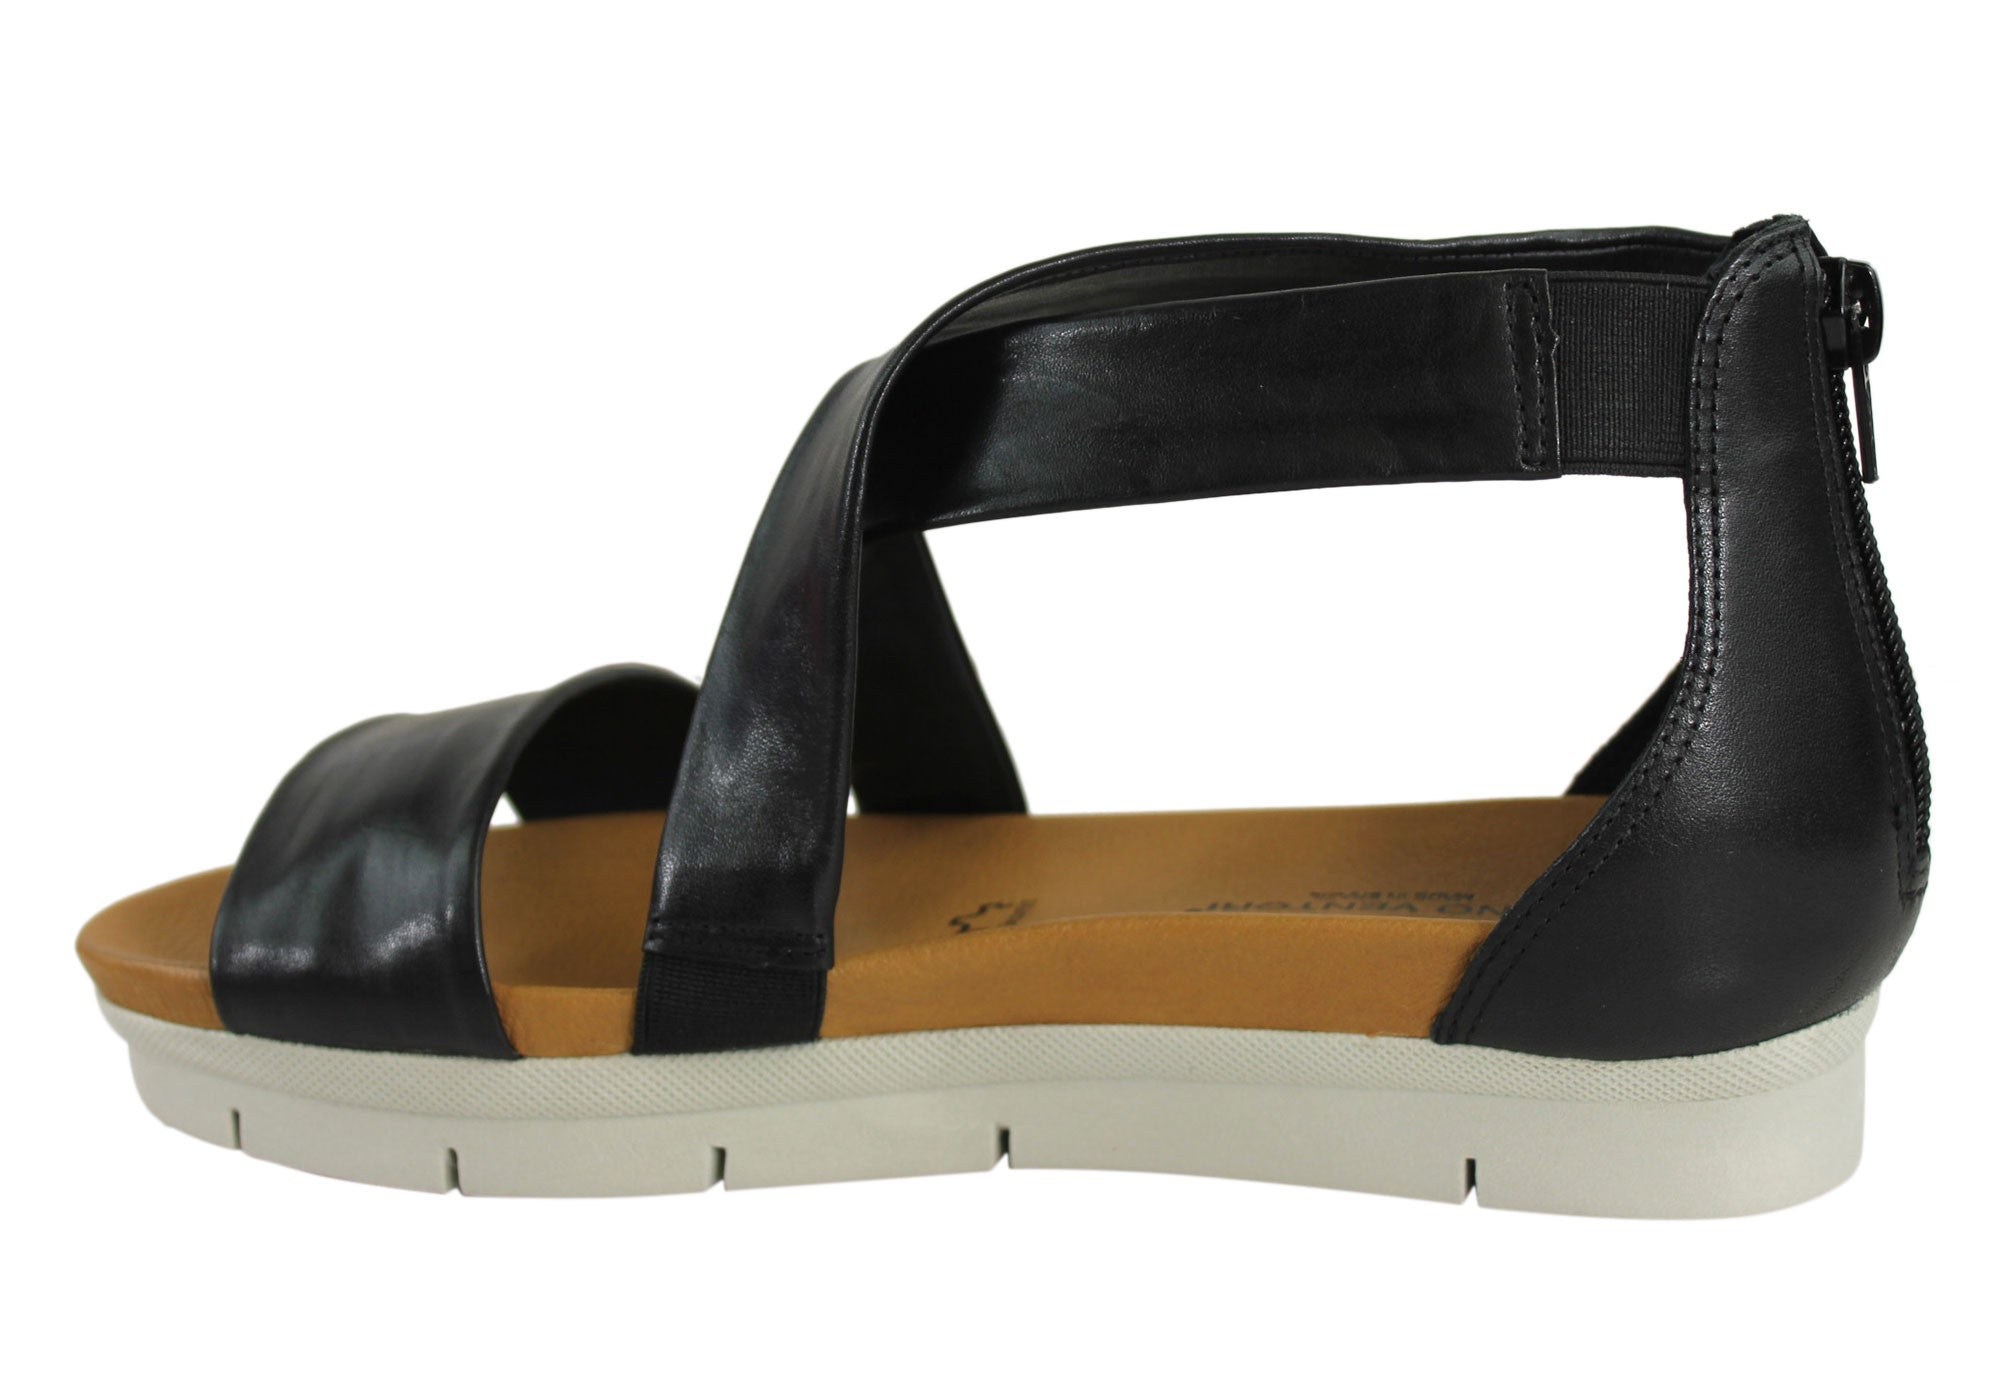 Gino Ventori Lottie Womens Leather Flatform Sandals Made In Brazil